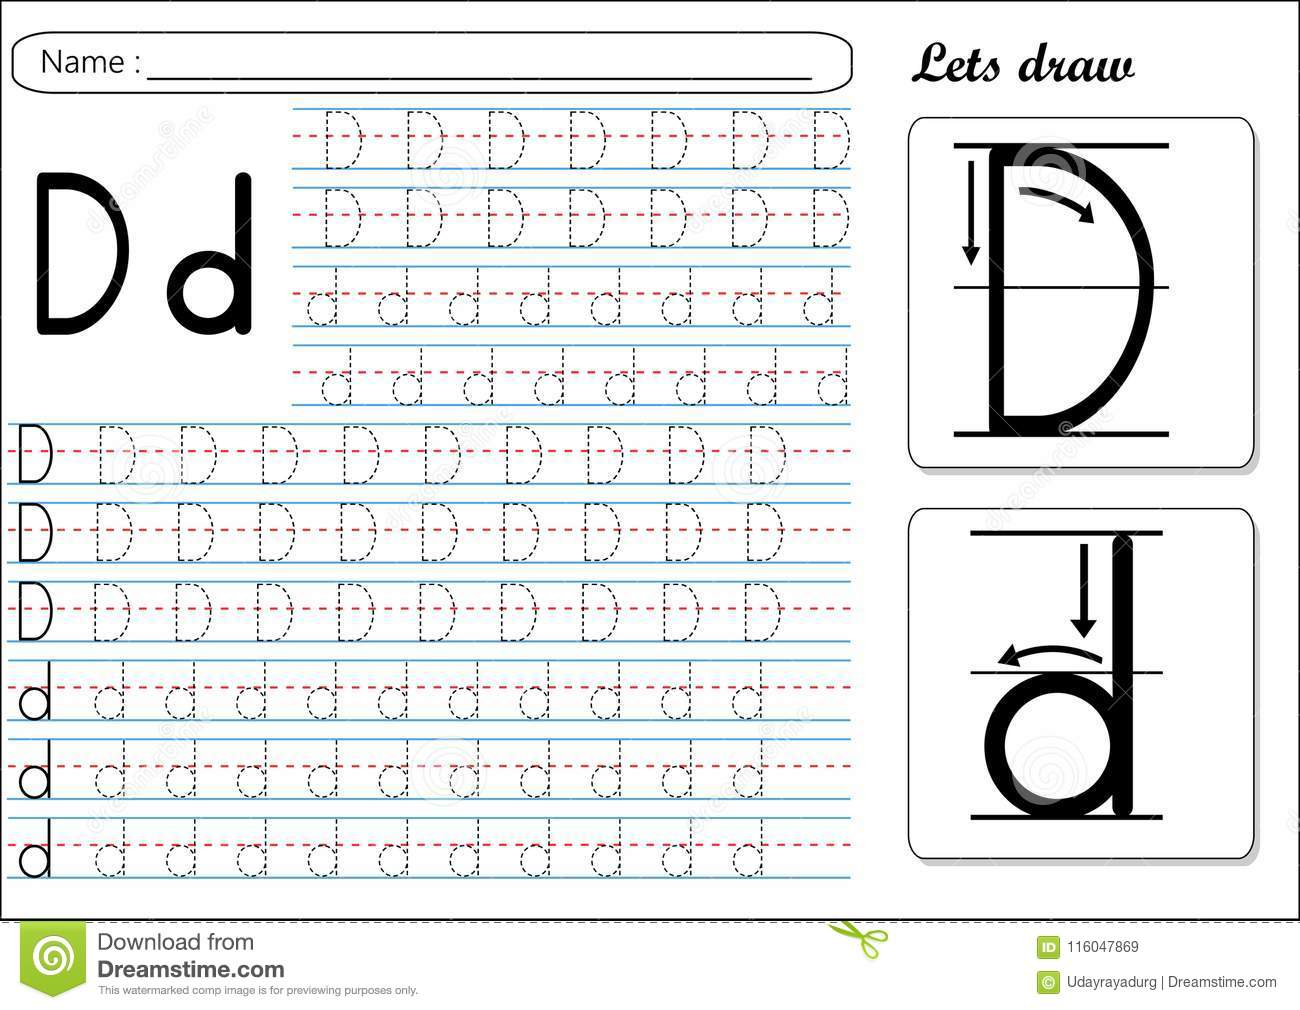 Tracing Worksheet -Dd Stock Vector. Illustration Of Small inside How To Make Tracing Letters Worksheet